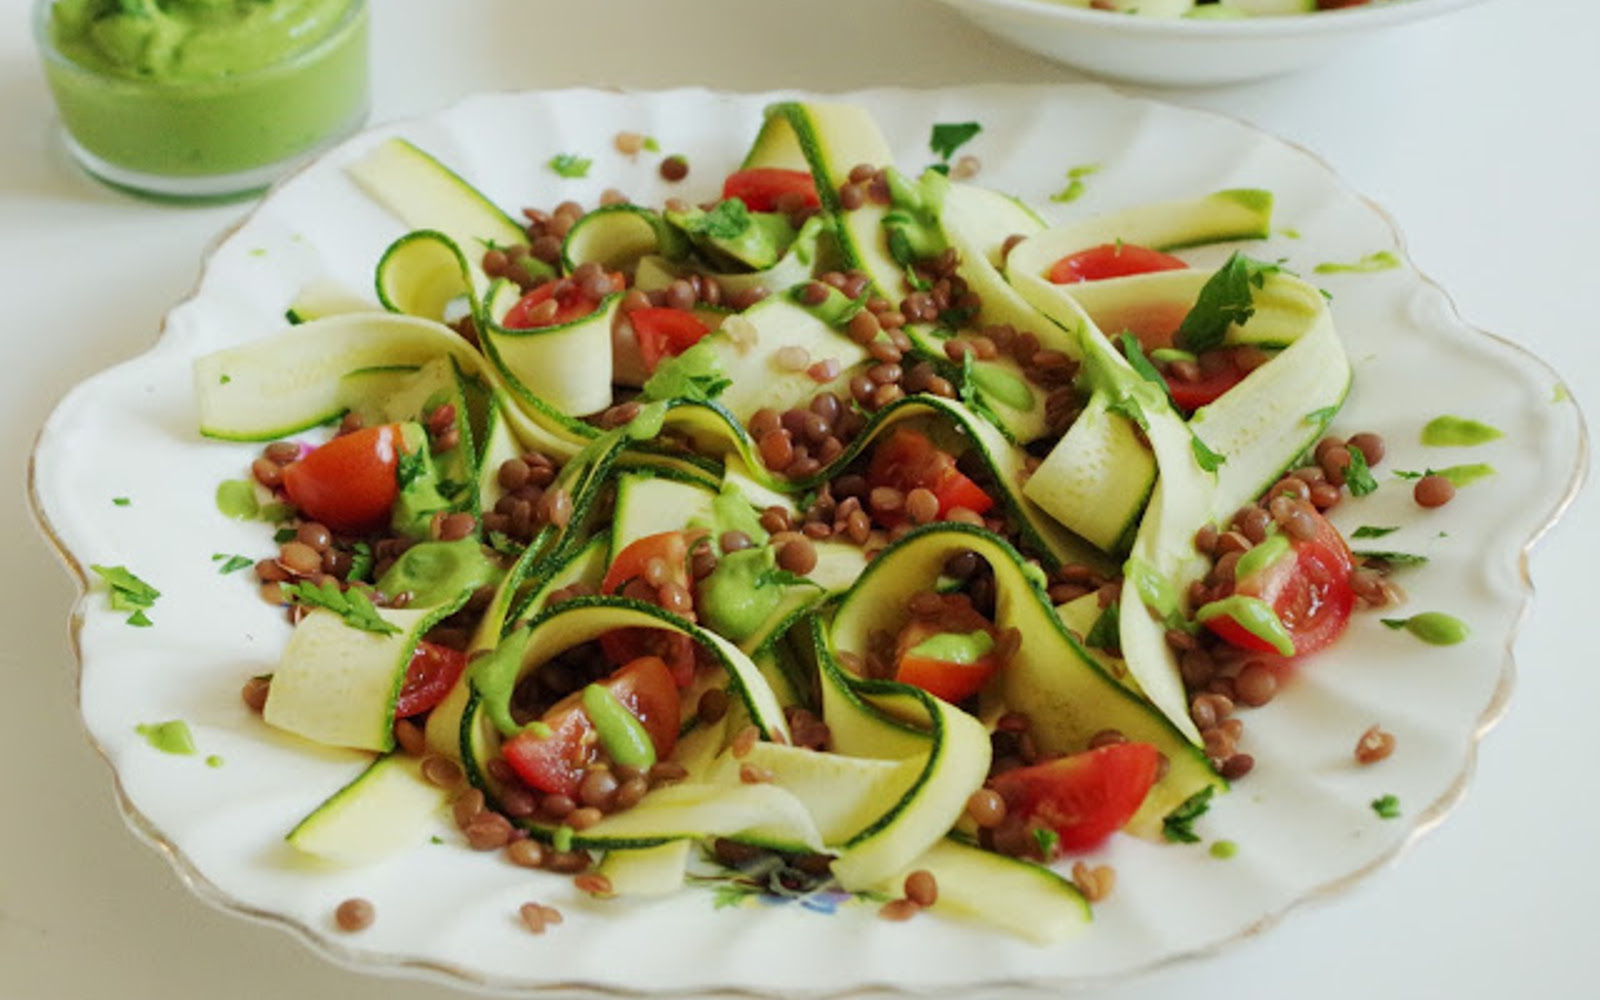 Zucchini Ribbons and Lentils